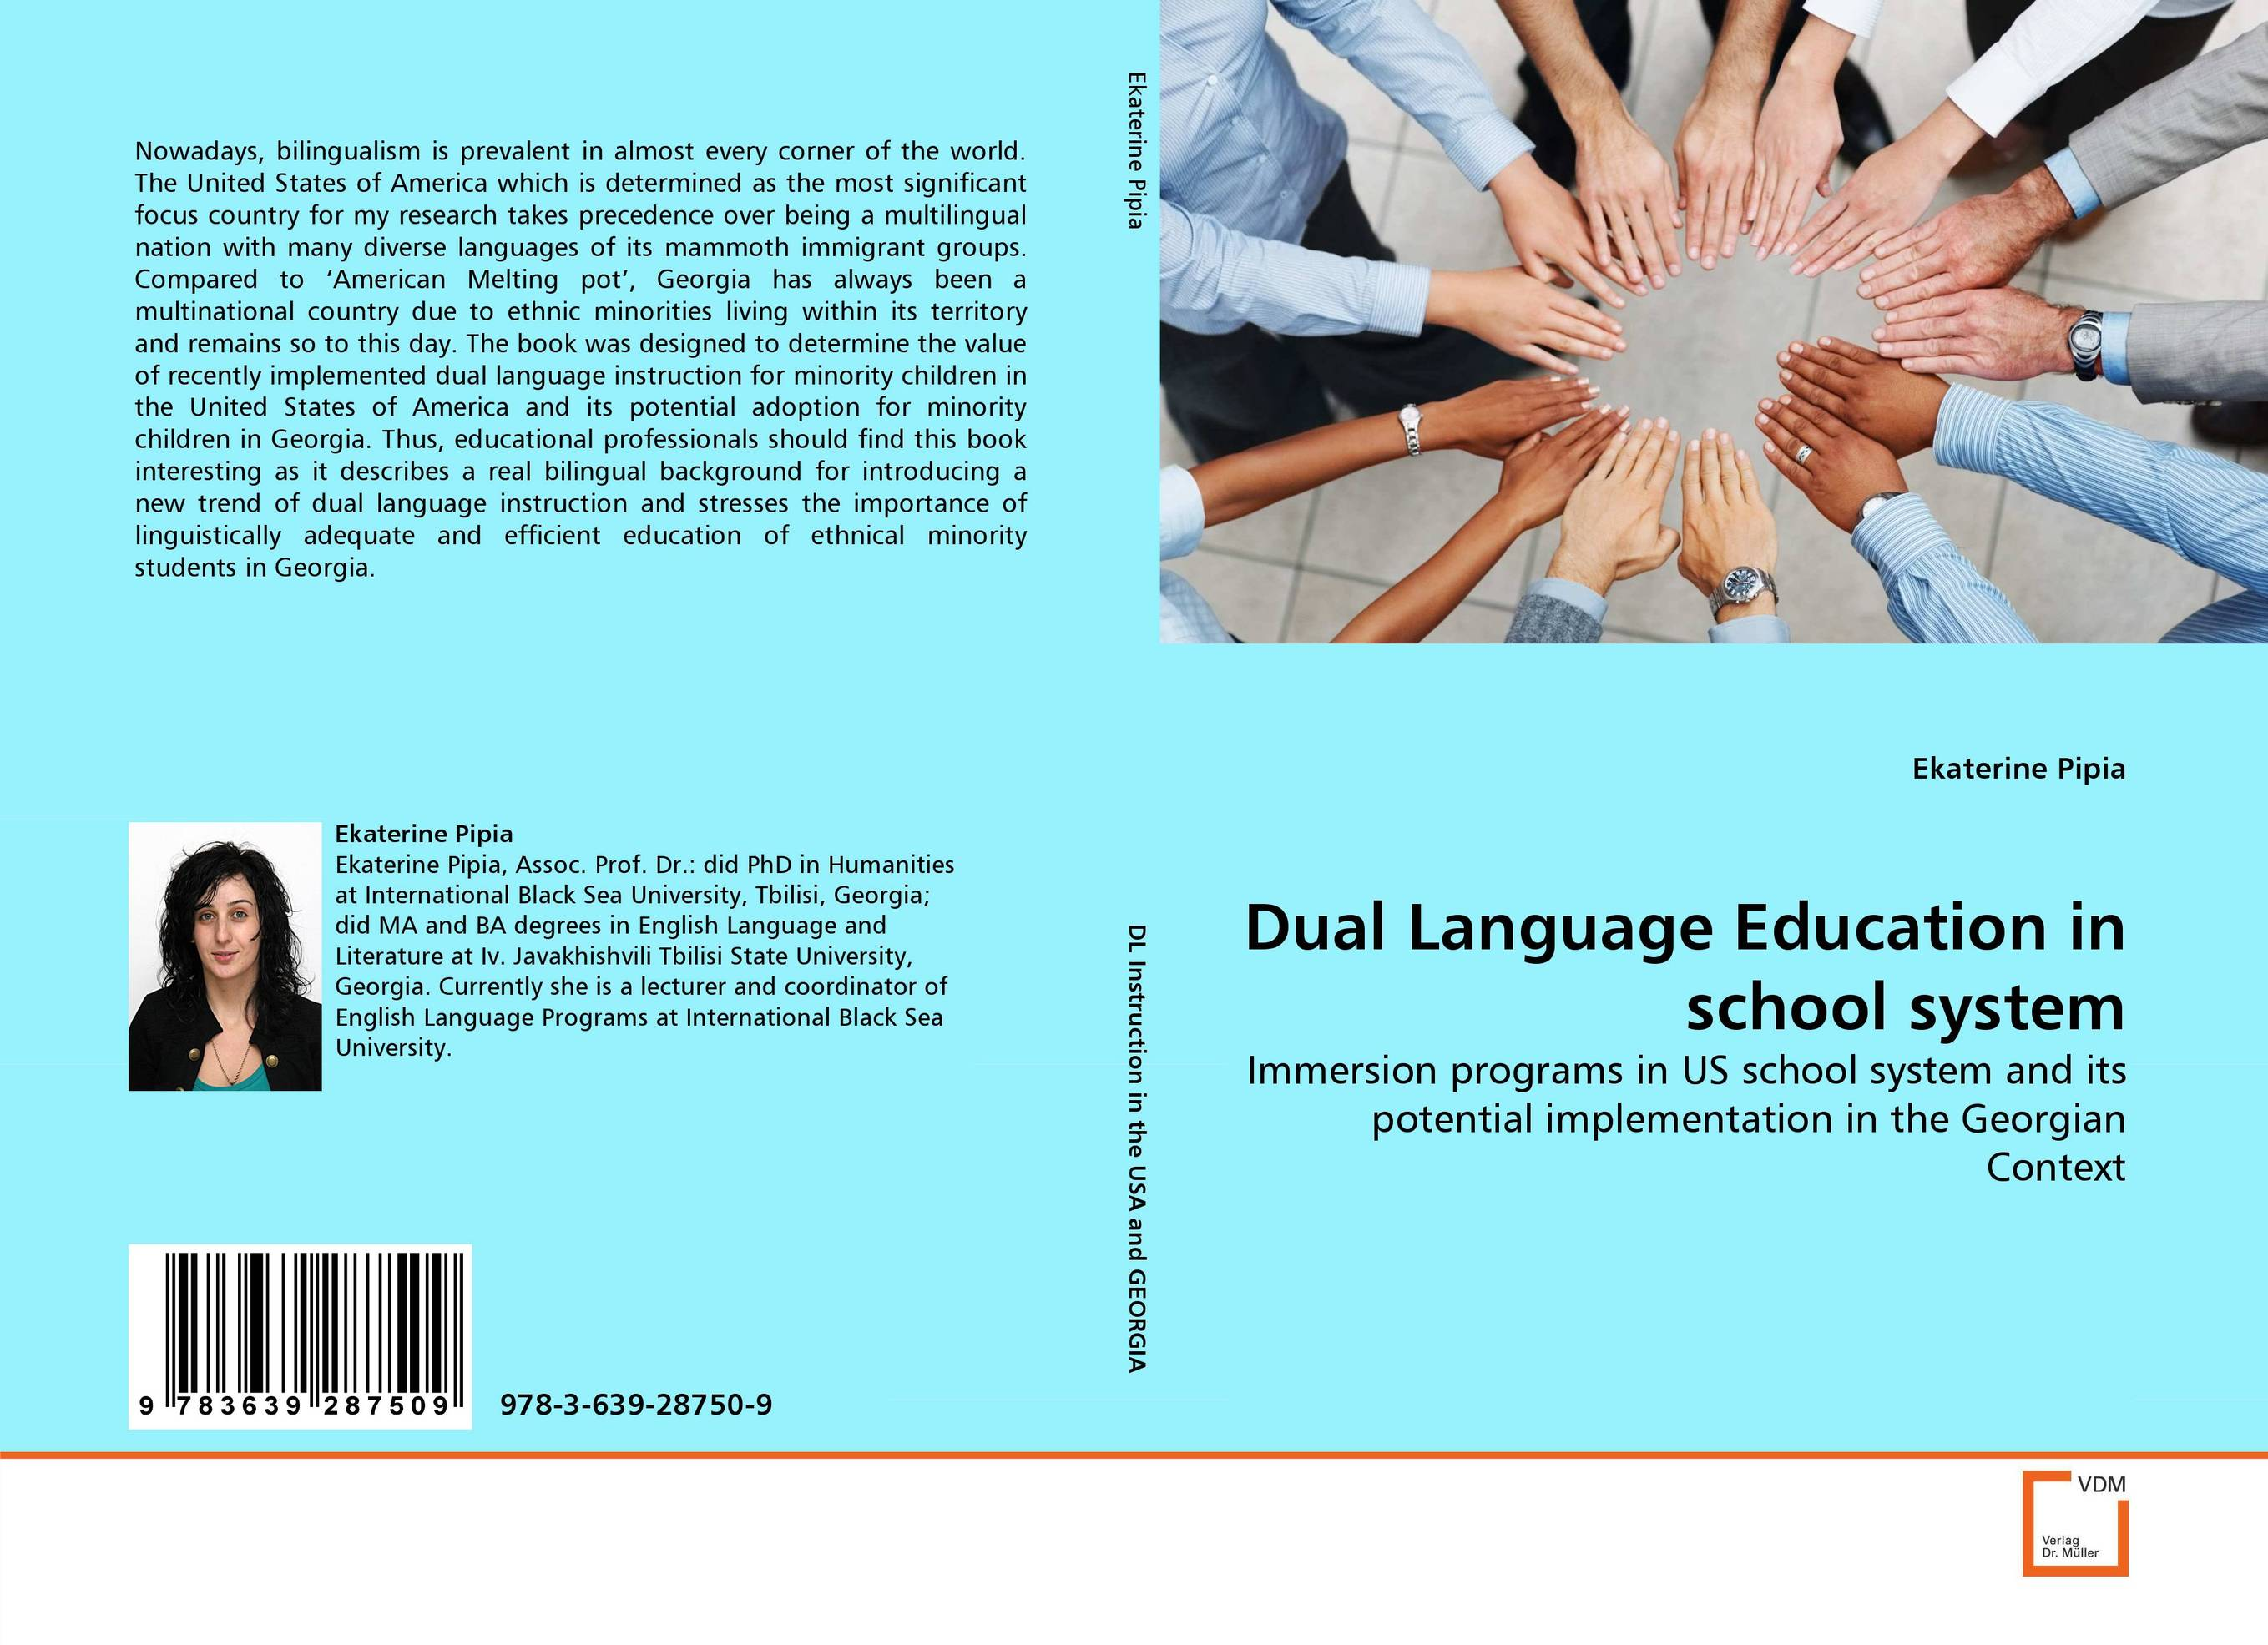 Dual Language Education in school system